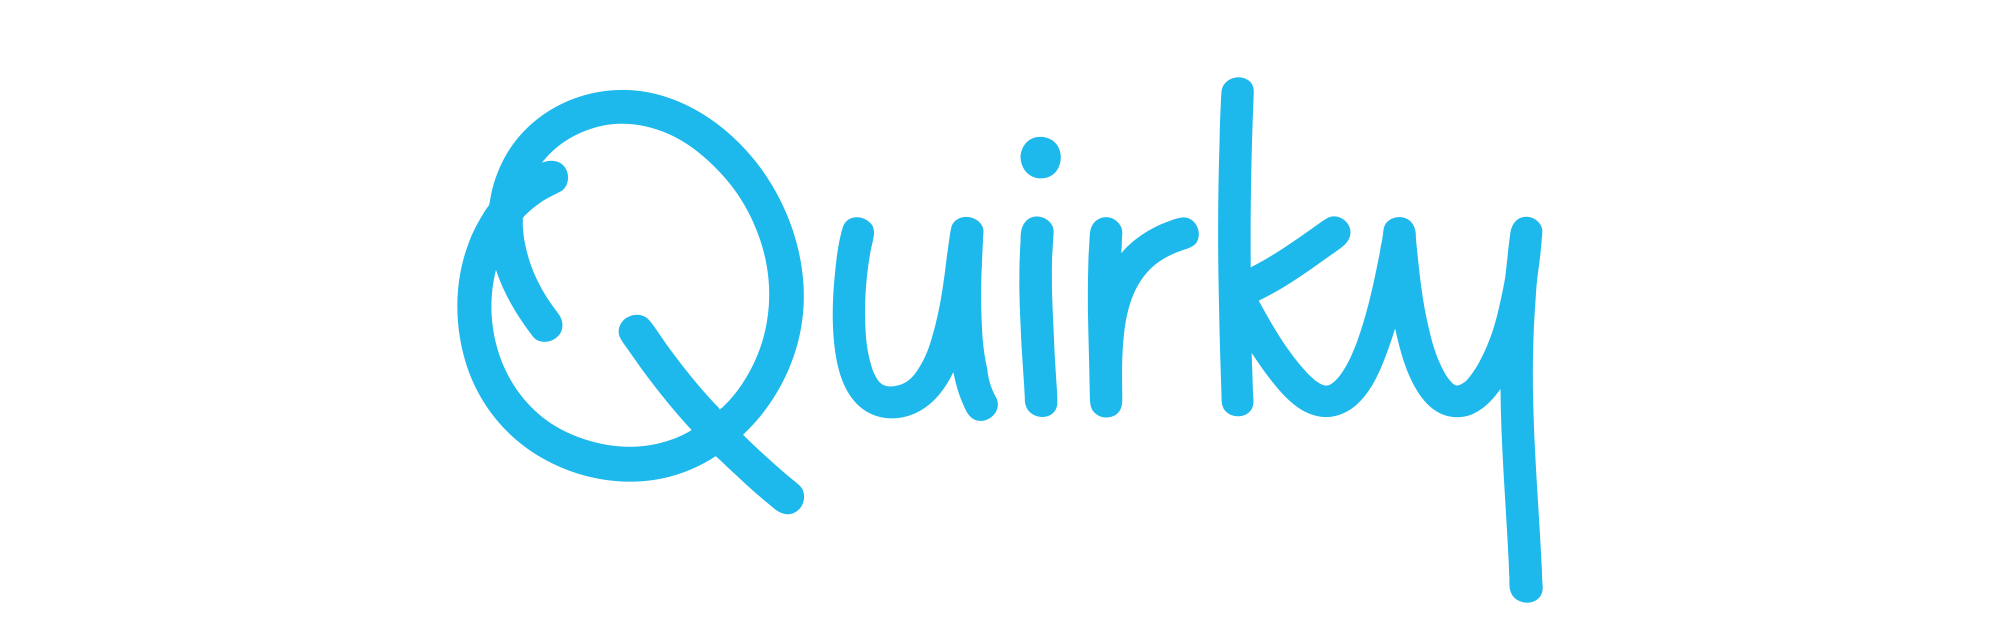 Logo-1-b-quirky.png